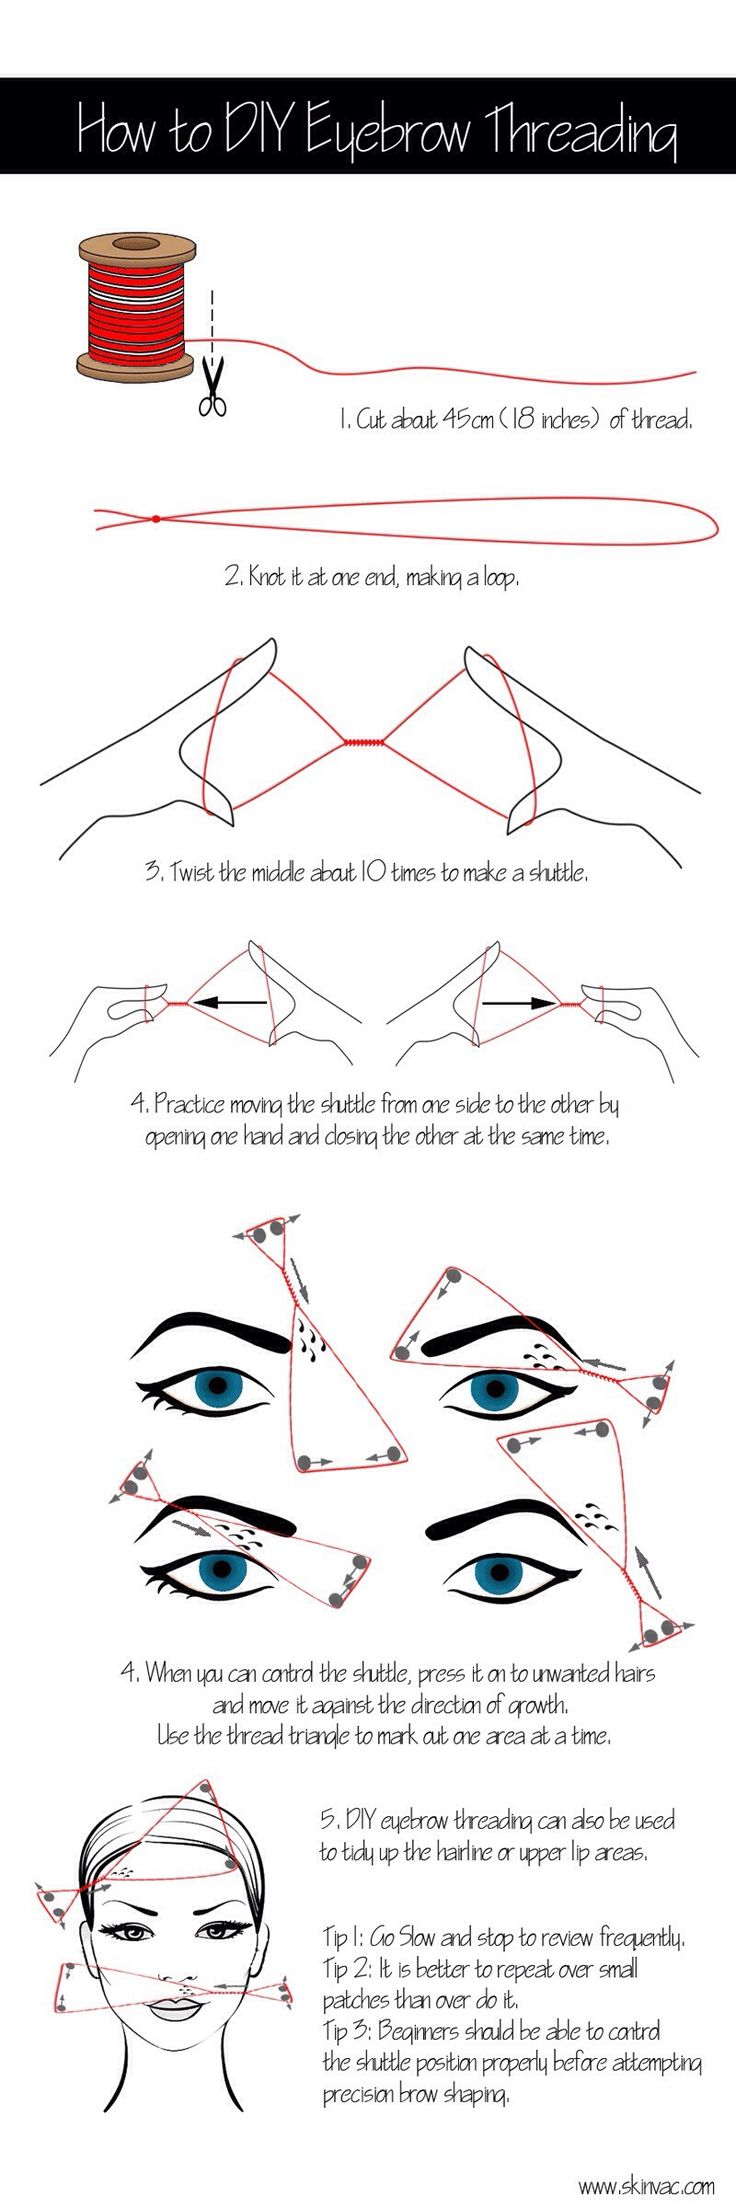 How To DIY Eyebrow Threading